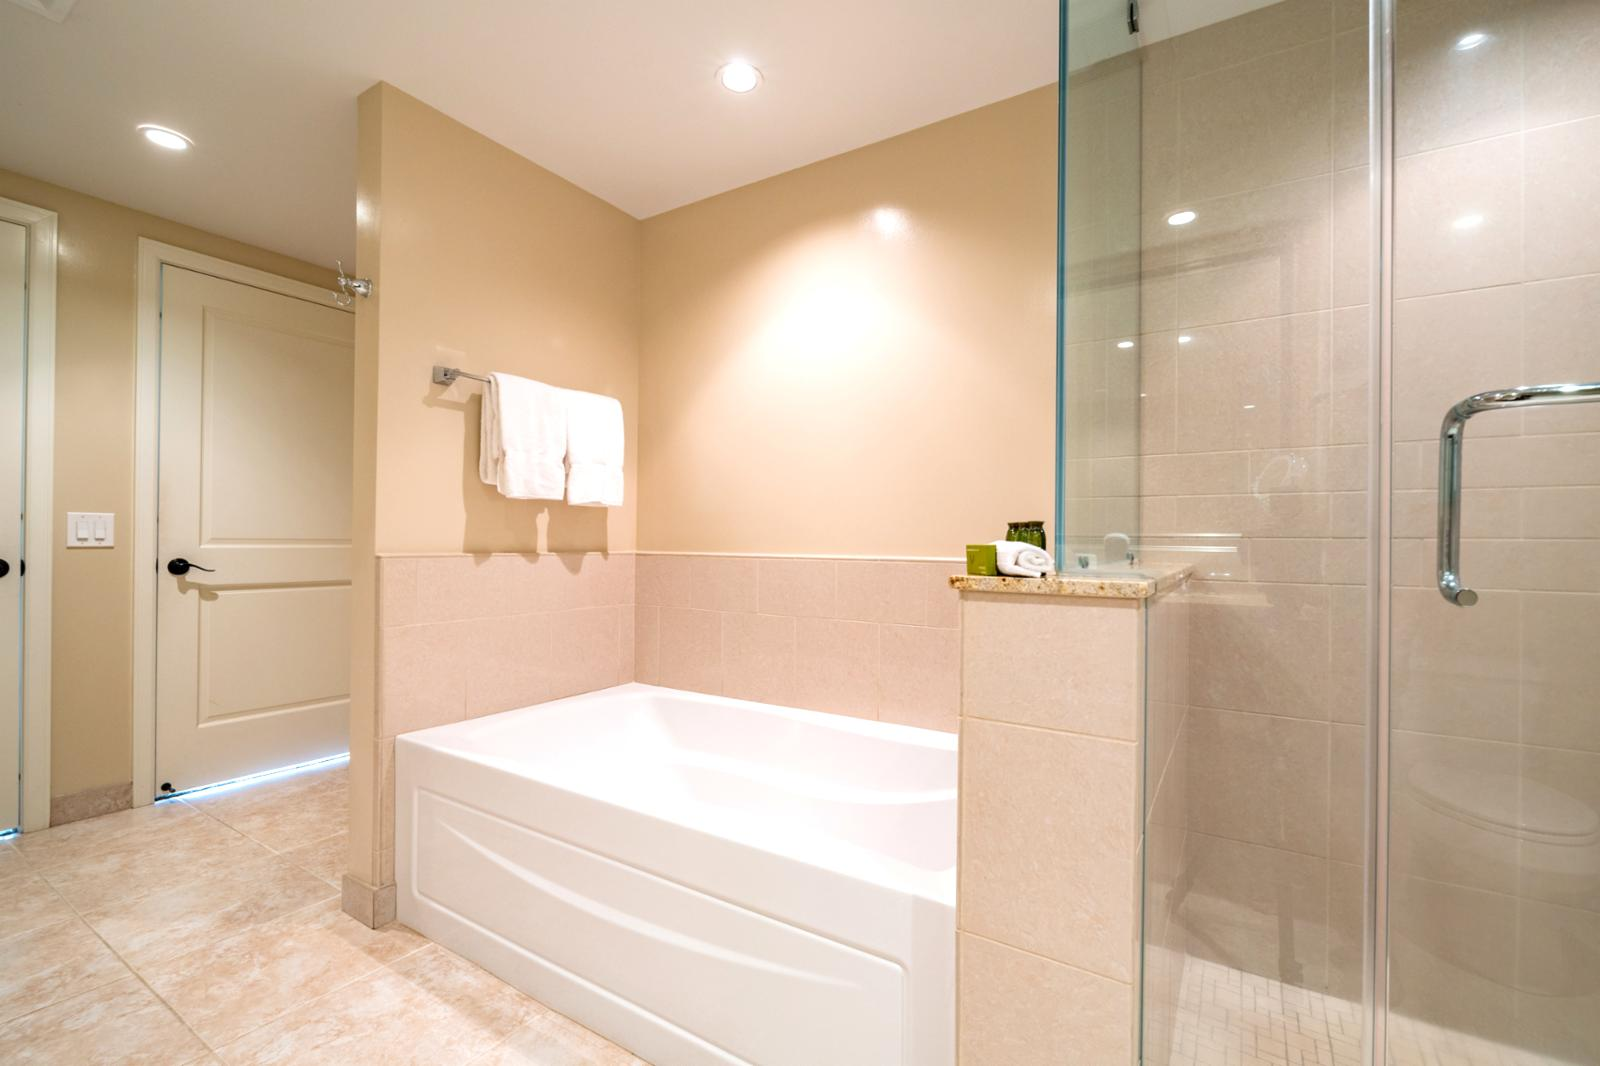 LARGE bathroom with floor to ceiling glass enclosed shower